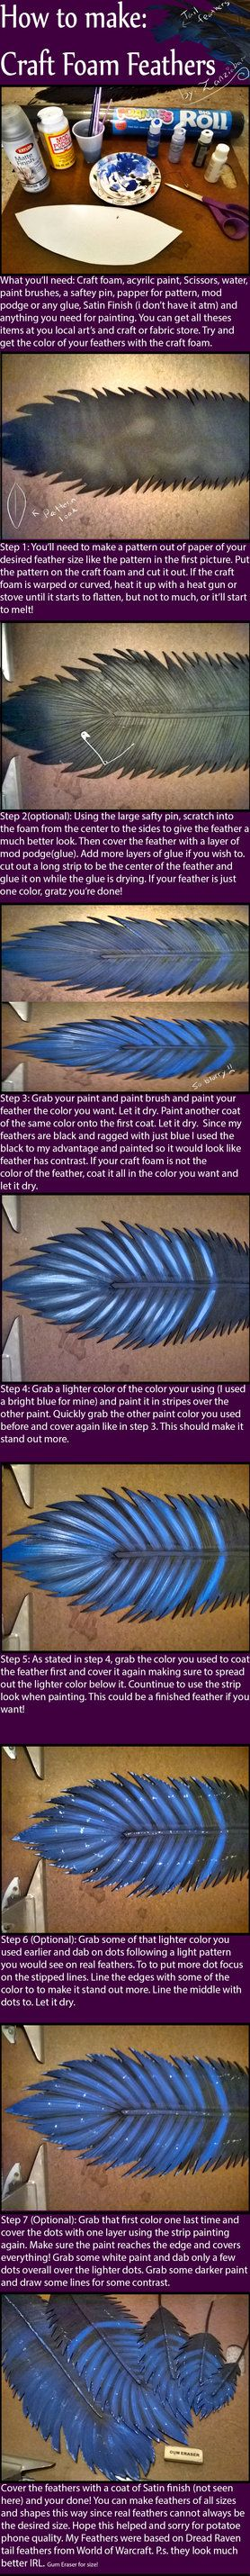 Craft Foam Feather Tutorial by Zanziabar on deviantART